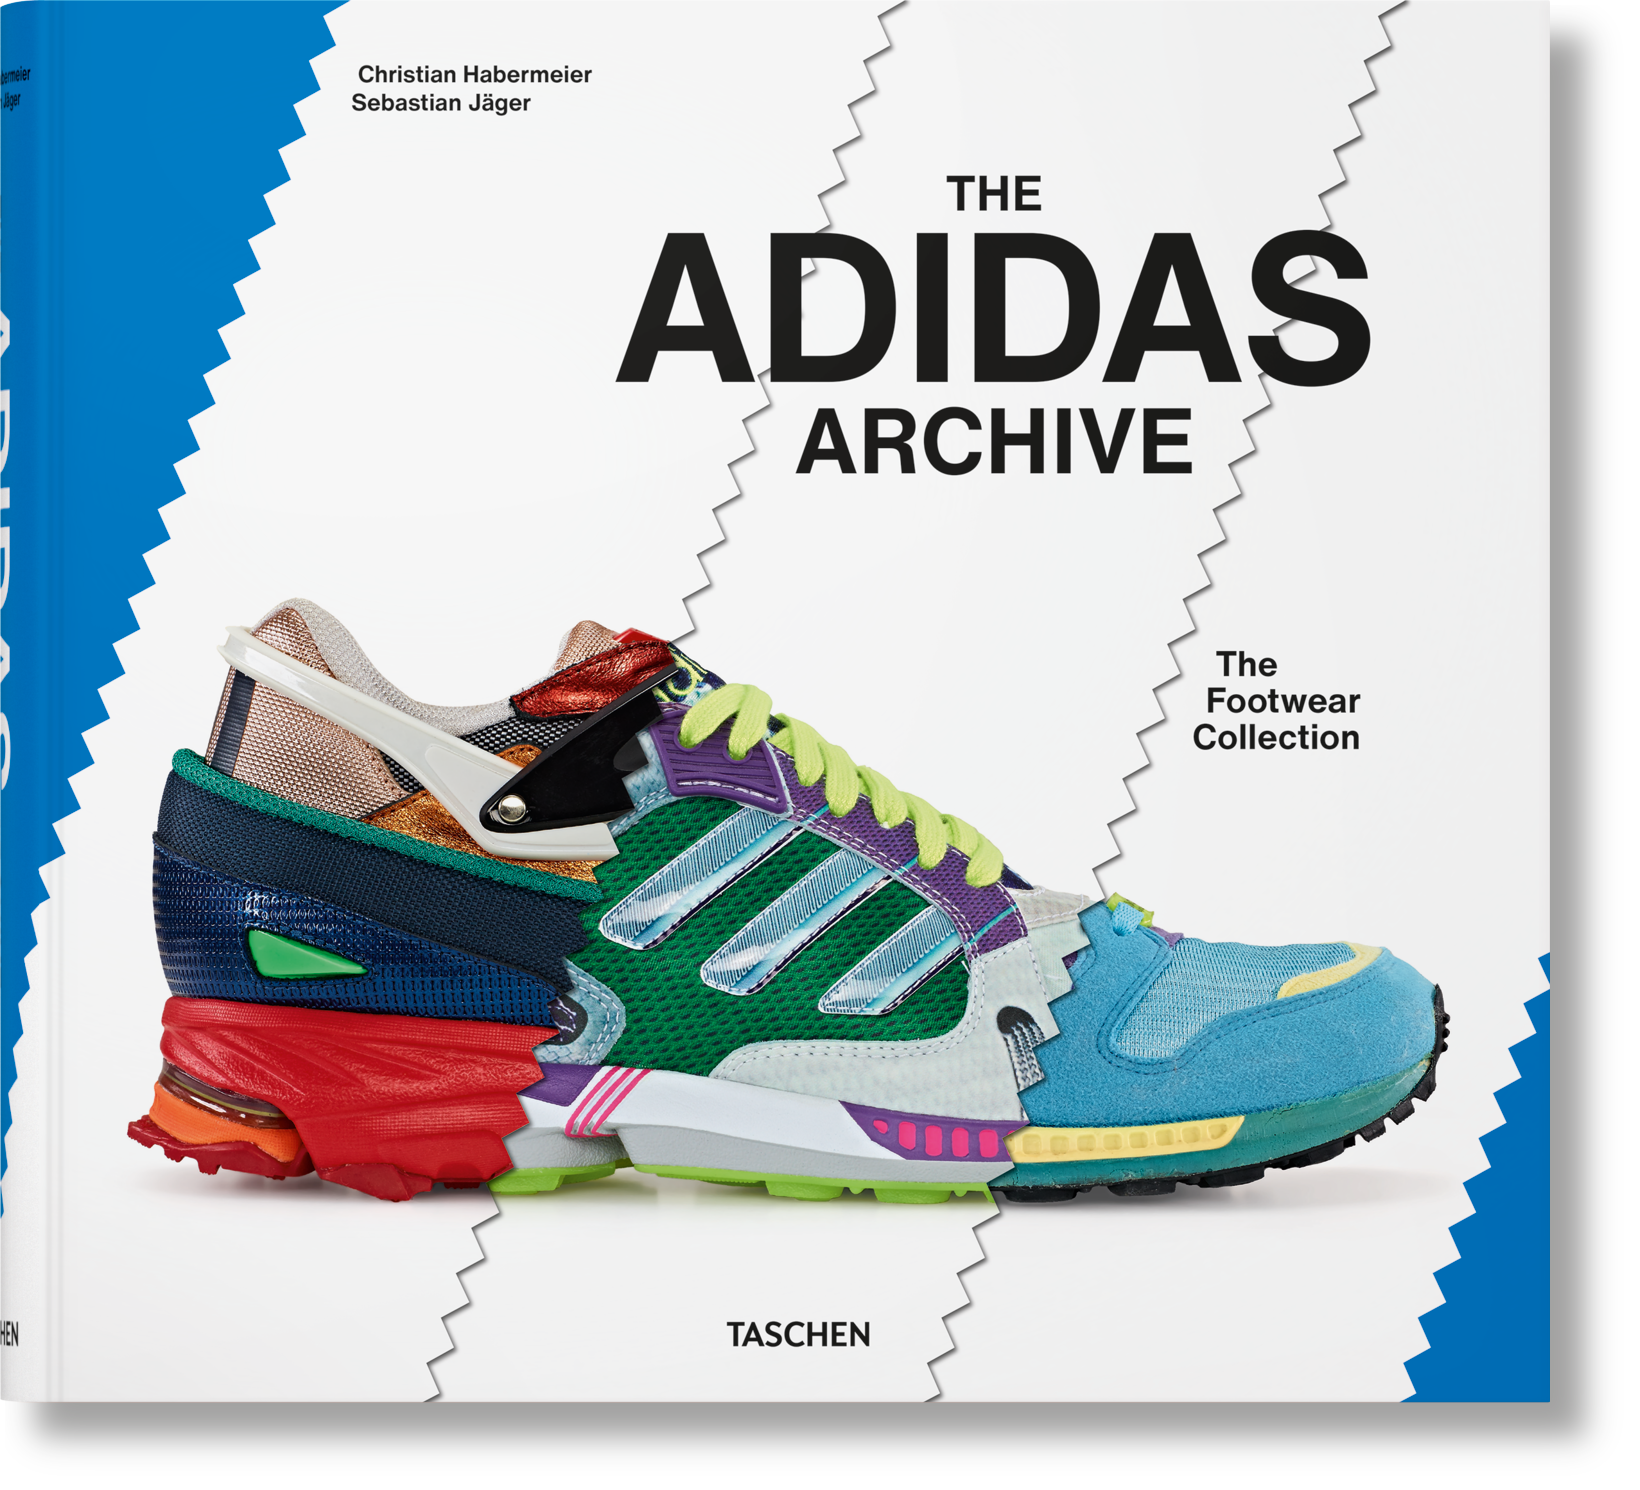 Adidas Archive: The Footwear Collection